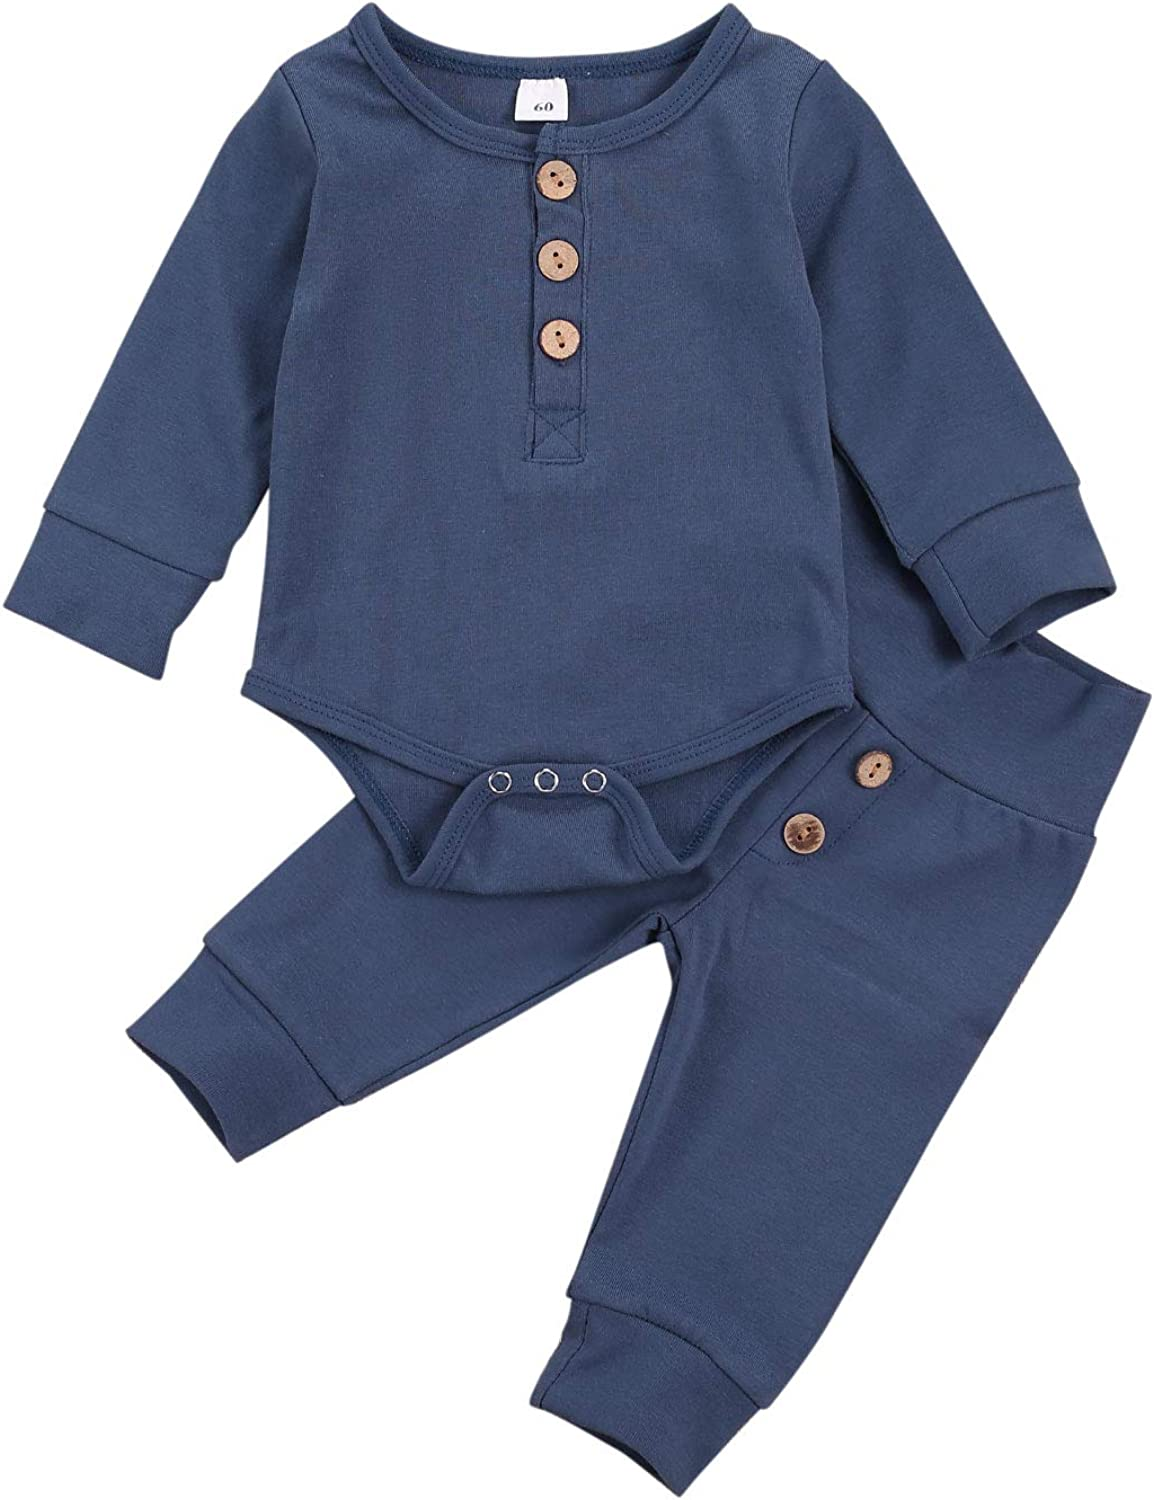 Infant Baby Boy Pajama Sets Cotton Solid Long Sleeve Button Romper Bodysuit Pants Outfits Home Coming Clothes